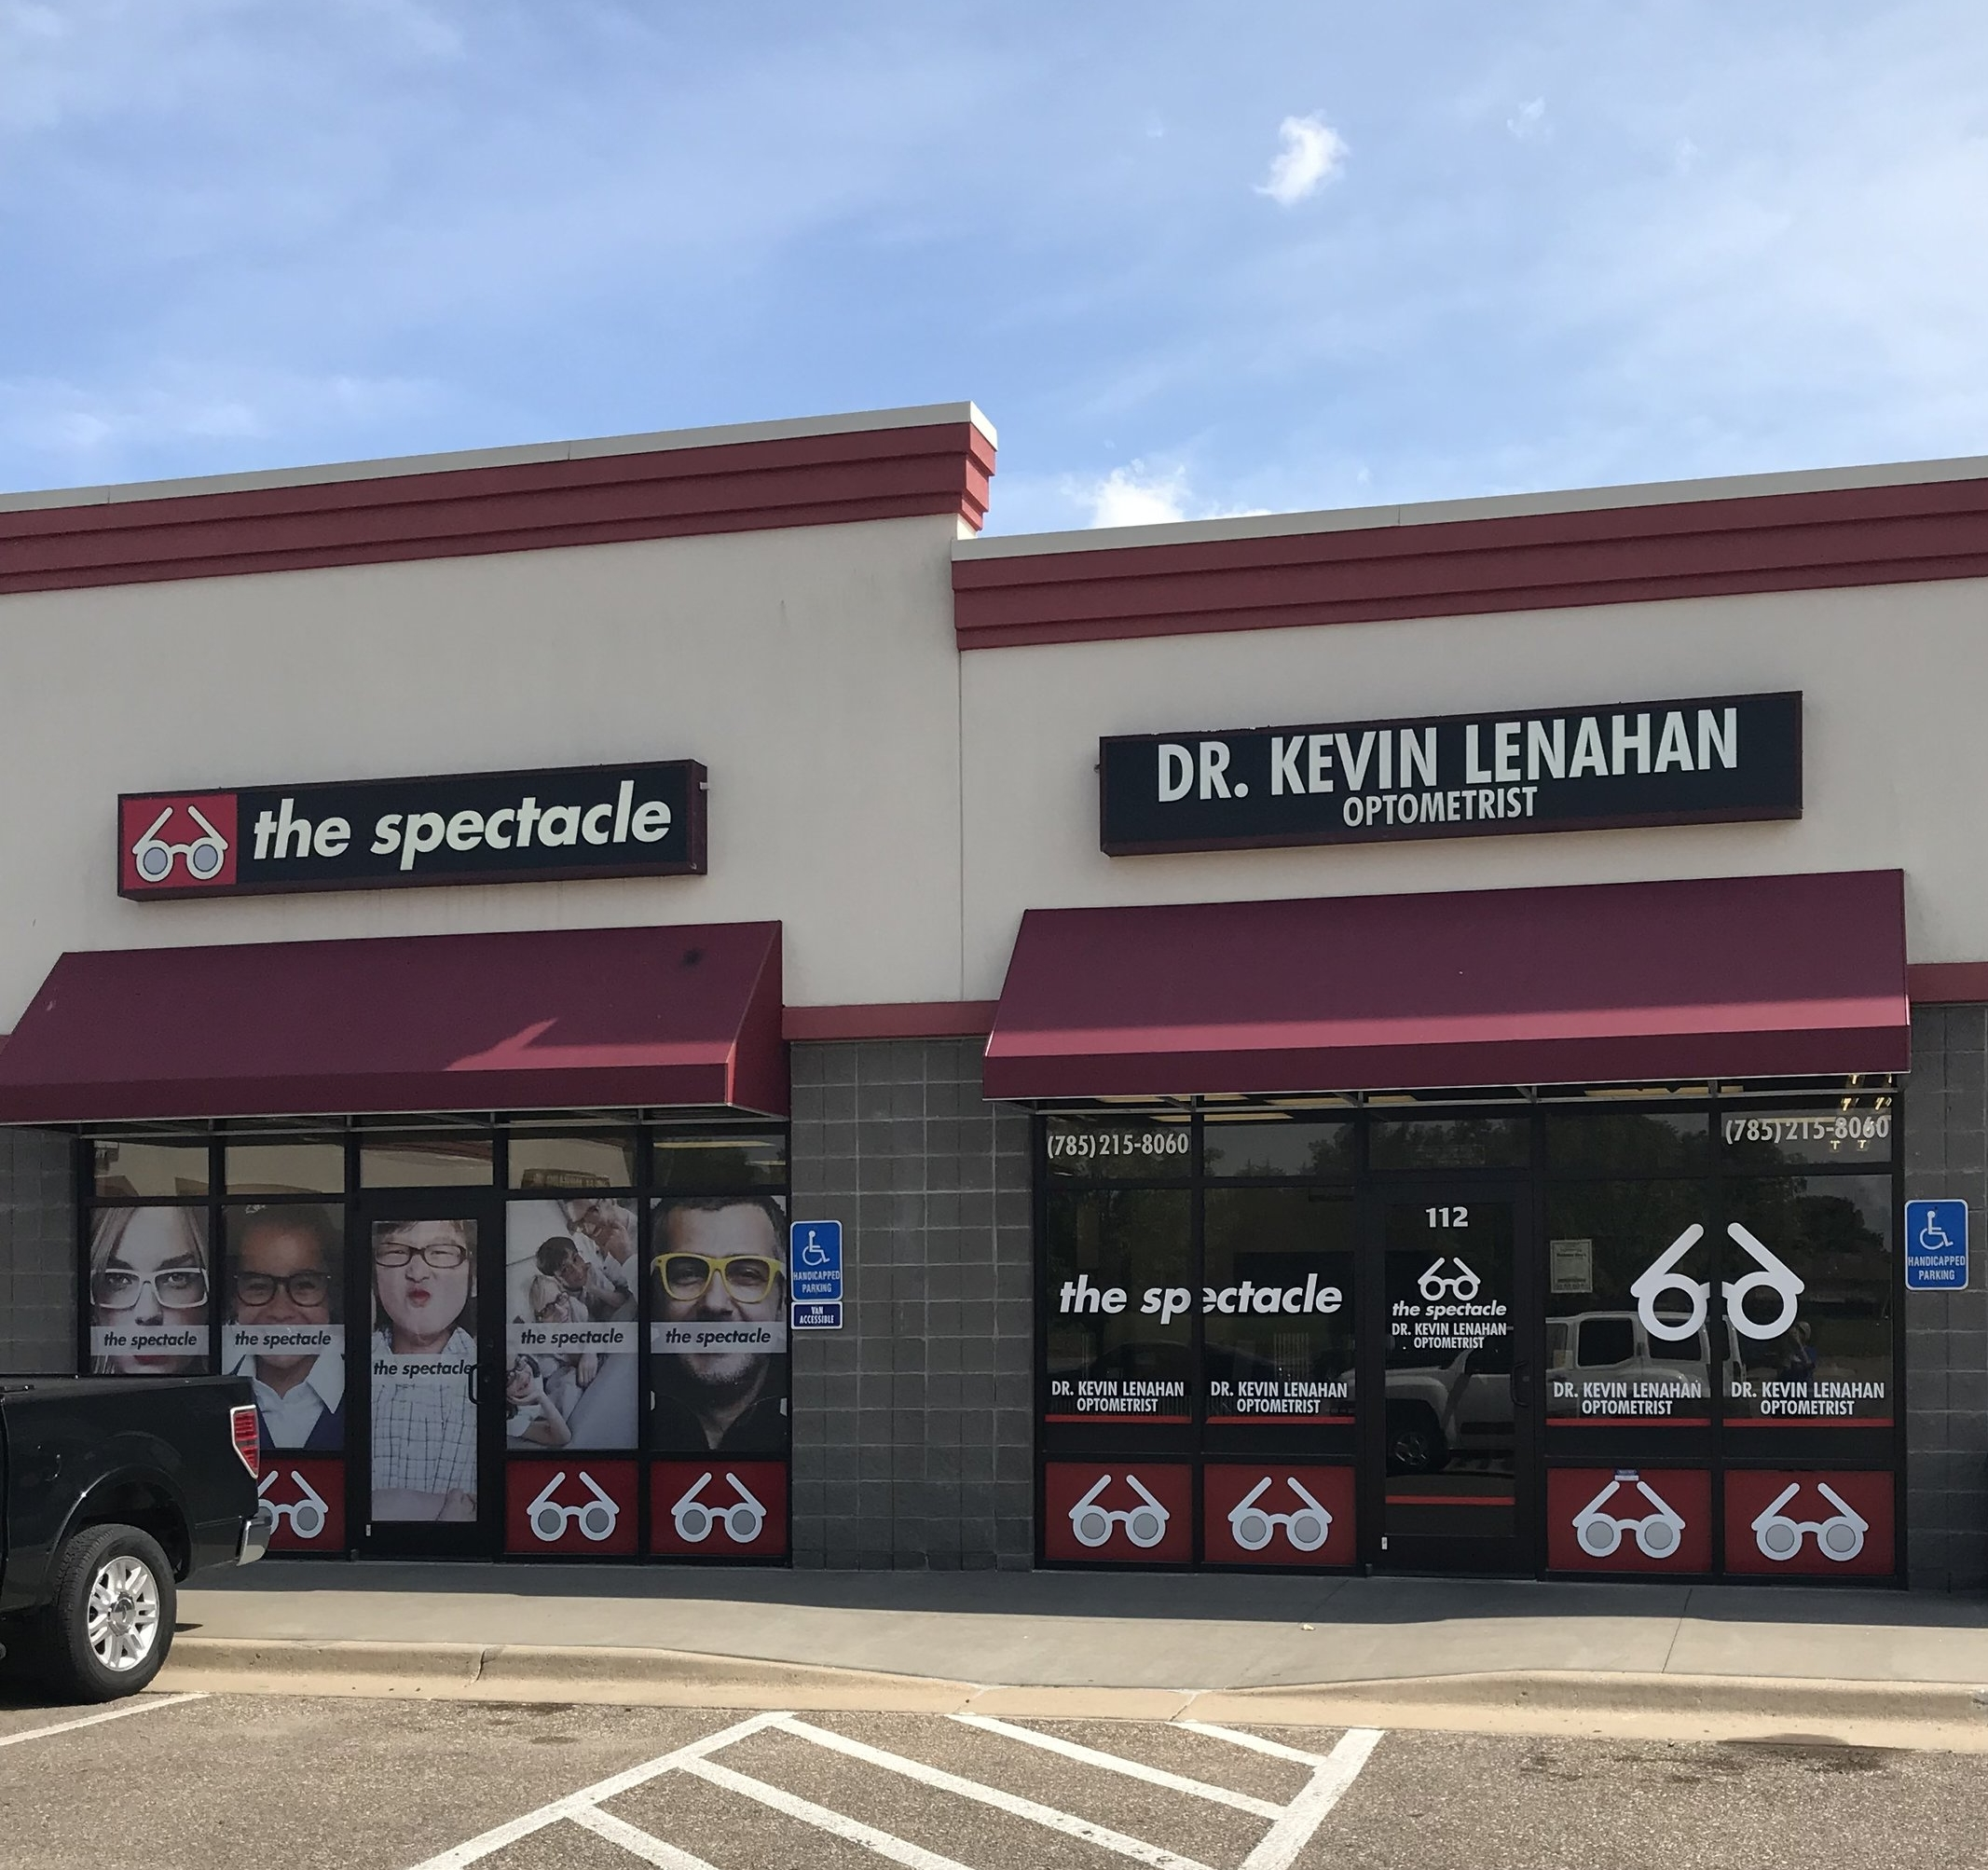 Southeast Topeka - On 9/4/19, this office will become The EyeDoctors Optometrists. Click here for details.3627 SE 29th St., Topeka, Kansas, 66605Phone: 785-215-8060Business Hours:Monday, 9 a.m.- 5 p.m. Tuesday, 9 a.m.- 6 p.m. Wednesday, CLOSEDThursday, 9 a.m.- 6 p.m. Friday 9 a.m.- 5 p.m.Closed For Lunch From 1 p.m. to 2 p.m. everyday.